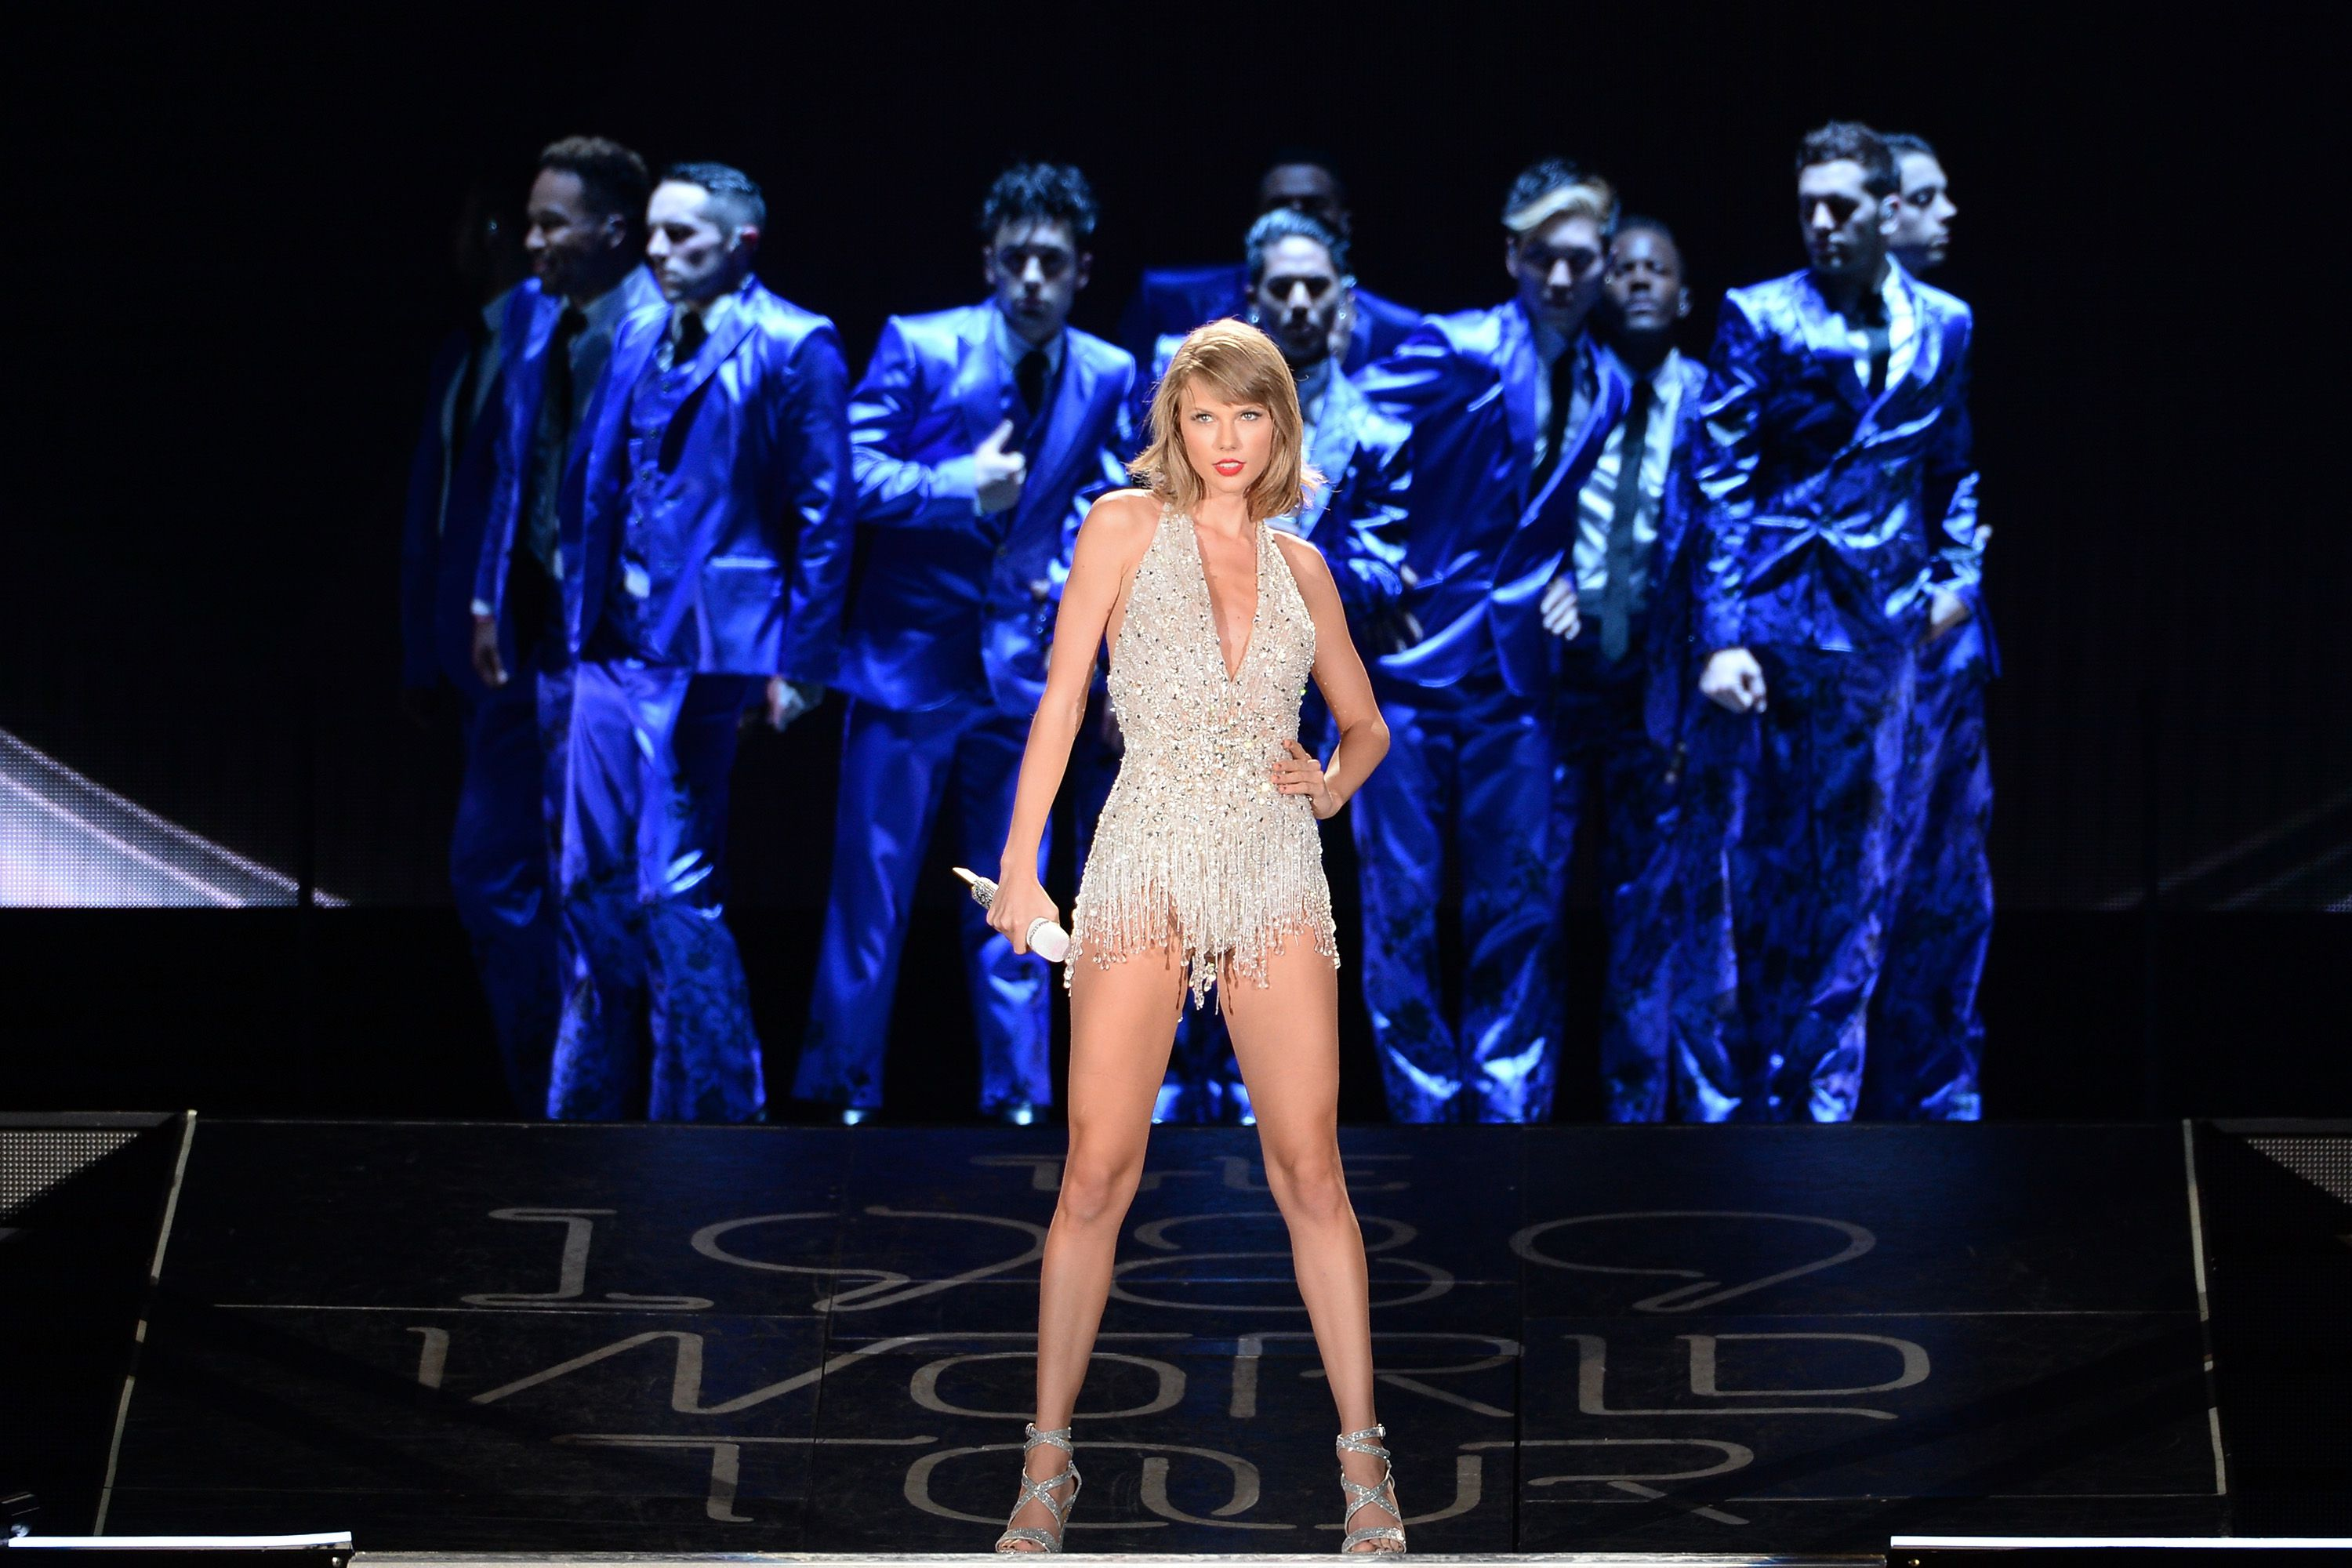 Taylor Swift performs during The 1989 Tour at Soldier Field on July 18, 2015 in Chicago, Illinois.